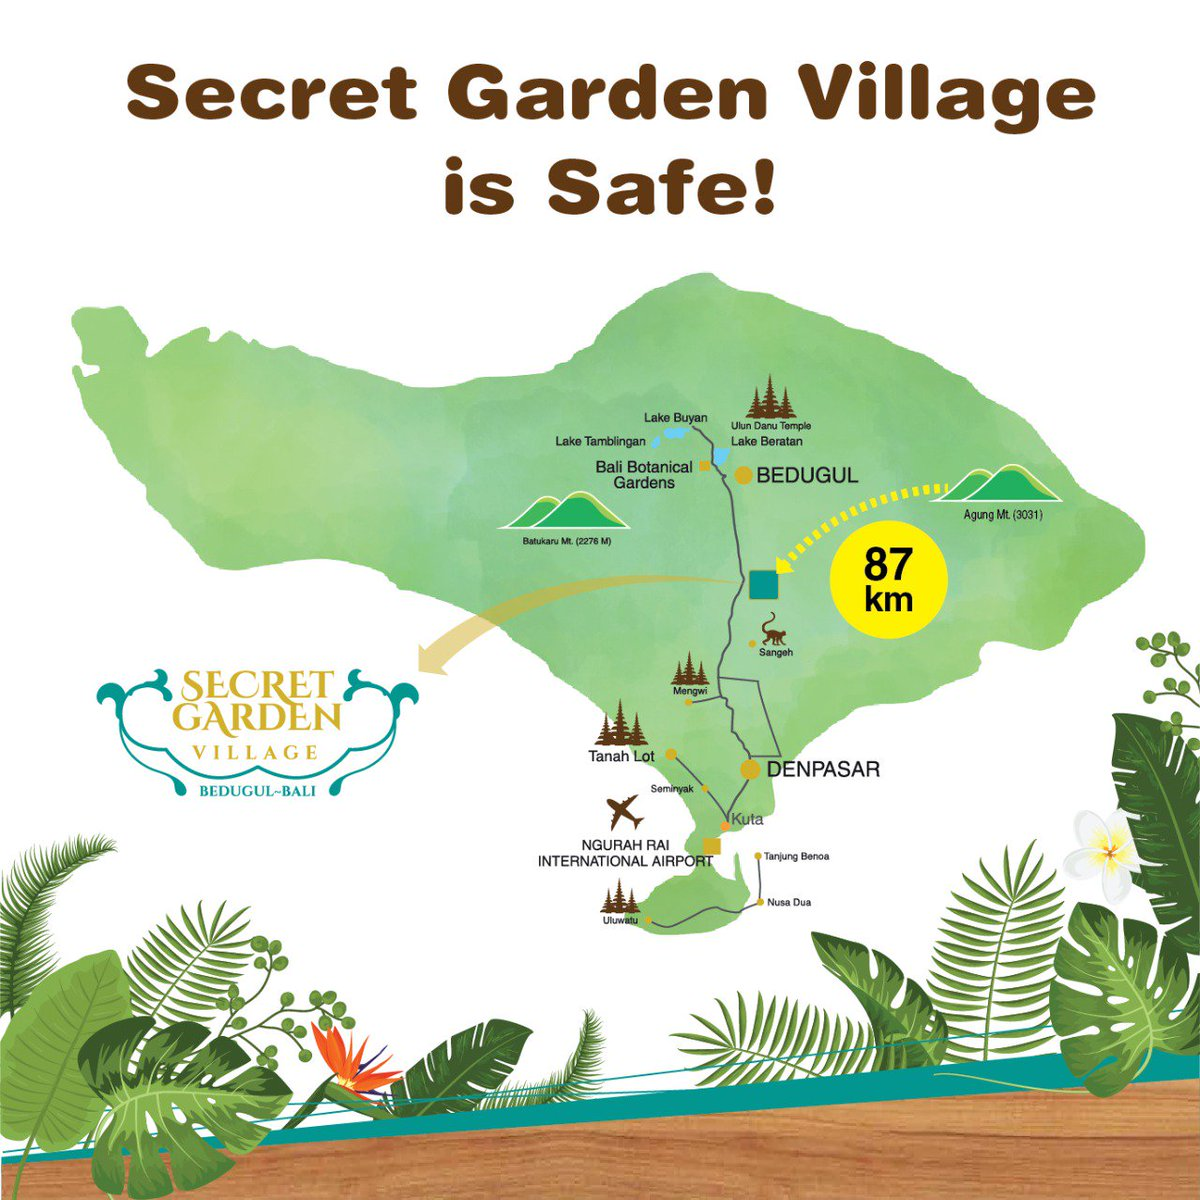 Herborist Natural Care A Twitter We Would Like To Kindly Inform You That Secret Garden Village Bedugul Bali Is Safe To Visit And We Have Several Promotional Events To Offer To